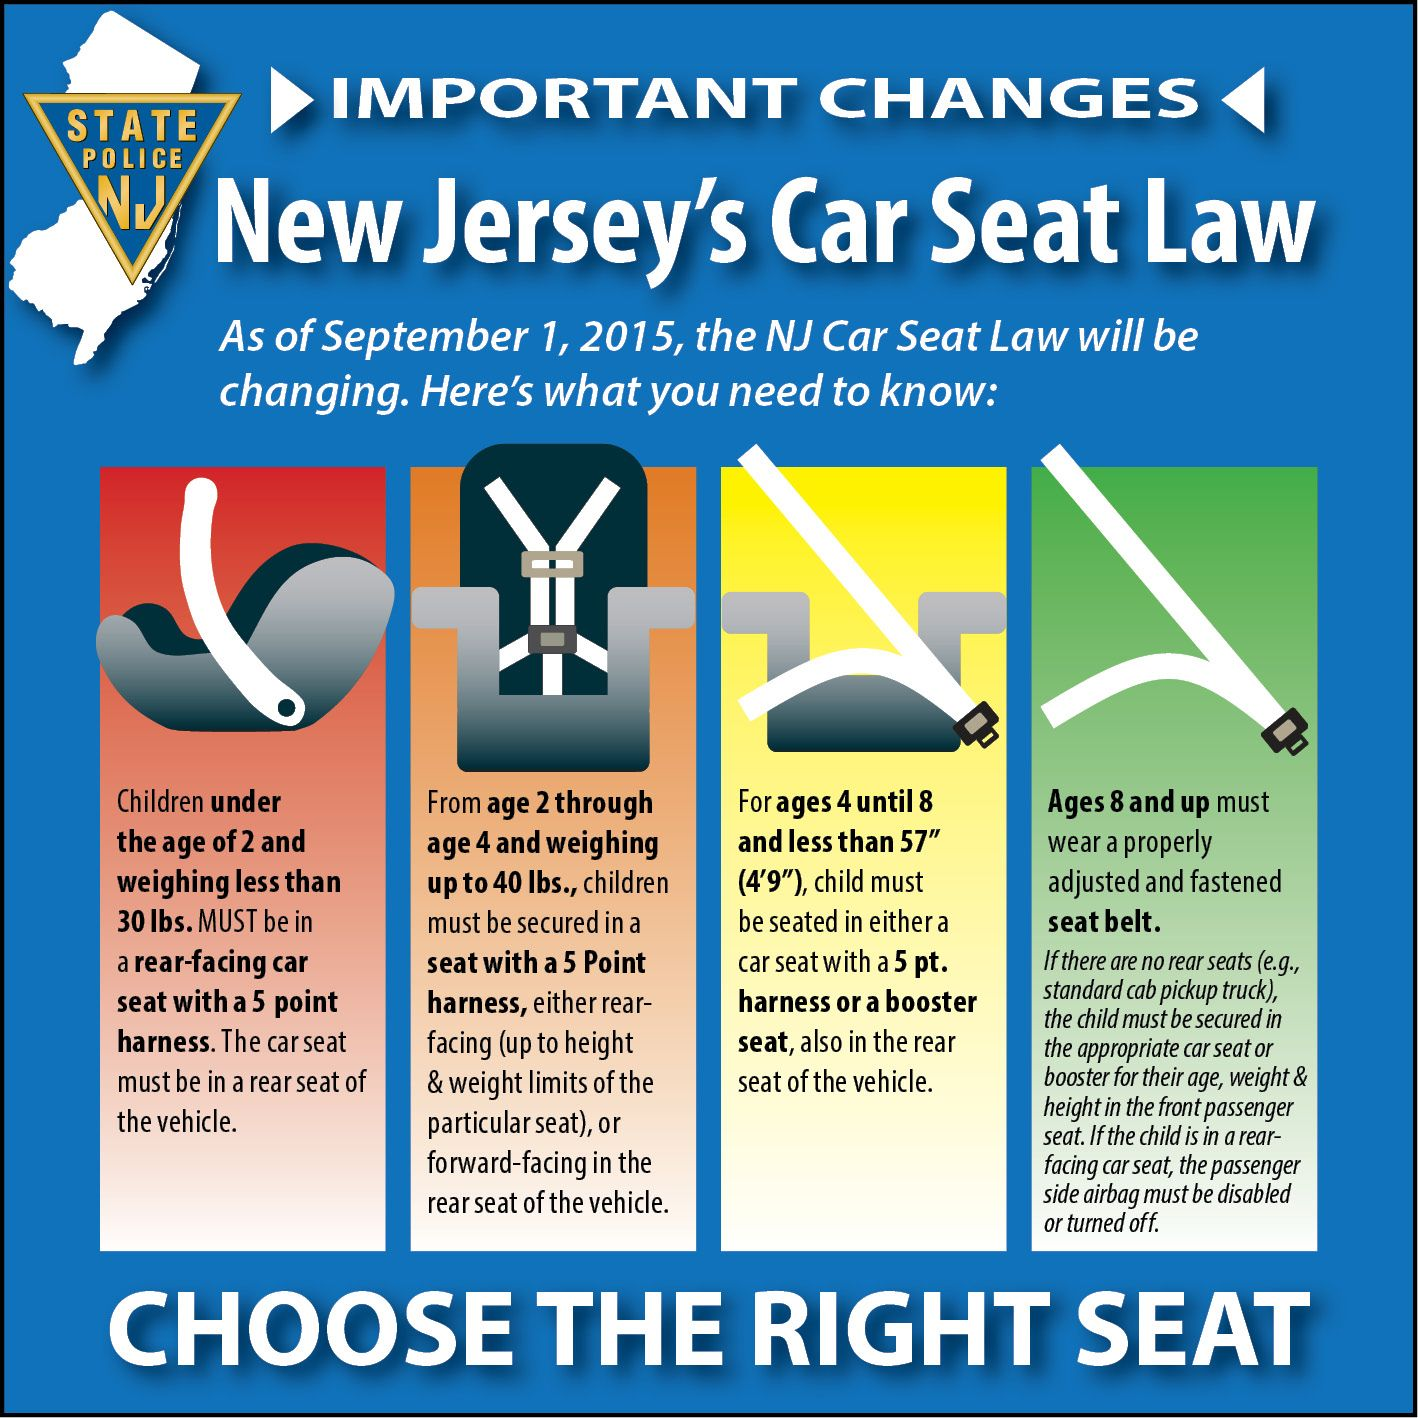 NEW JERSEY CHILD PASSENGER SAFETY LAW CHANGES EFFECTIVE SEPTEMBER 1,2015